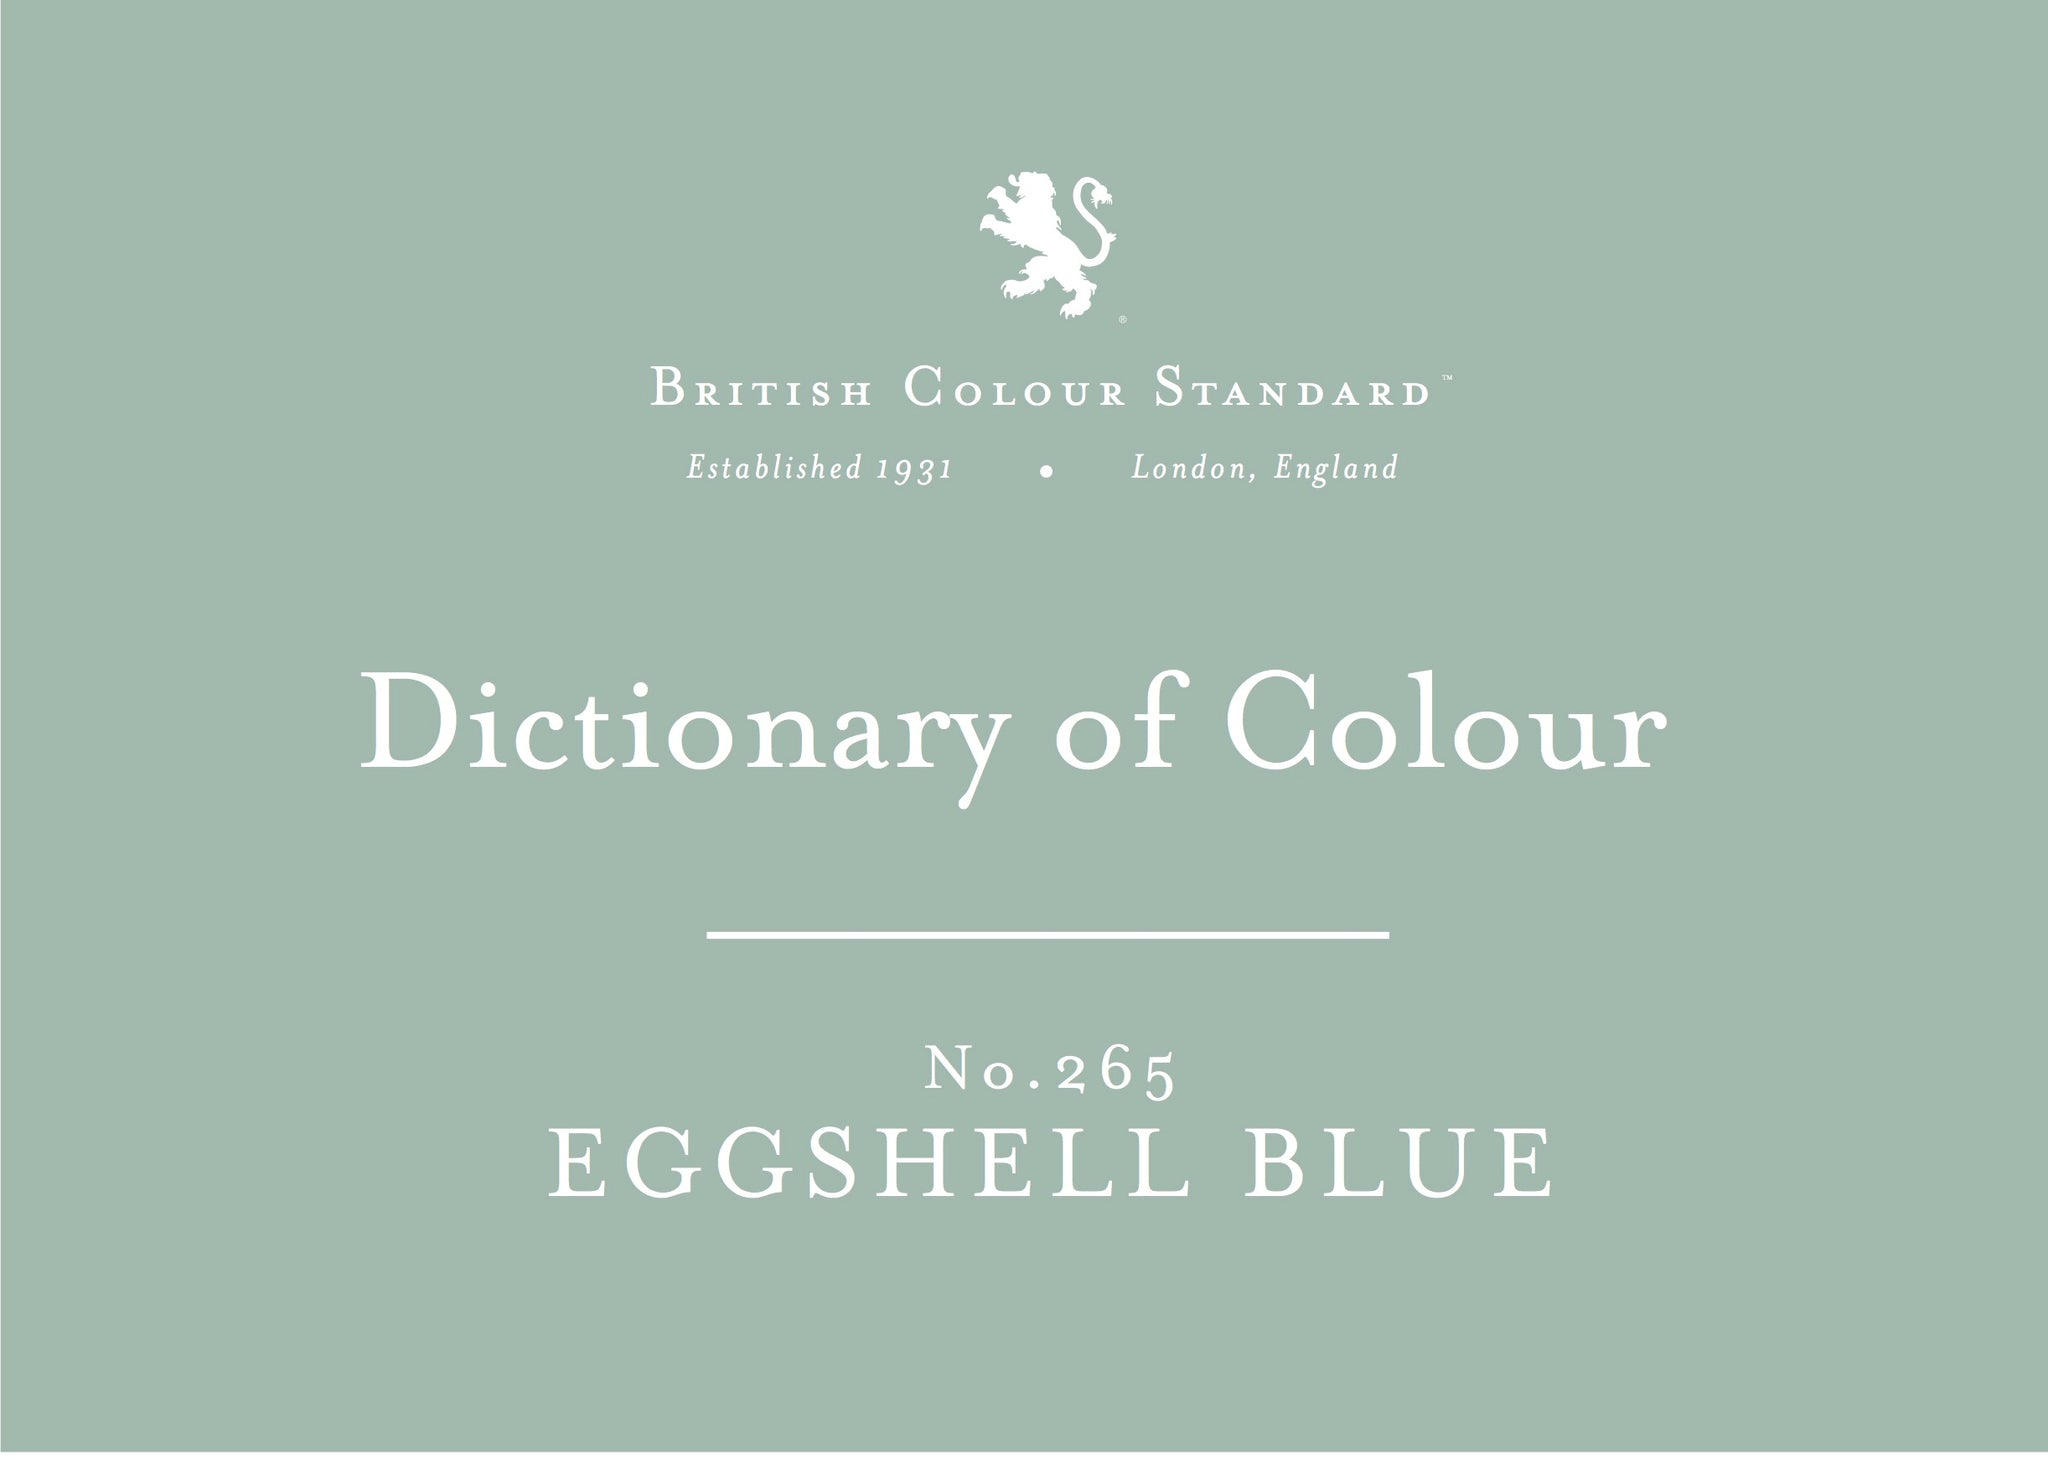 BRITISH COLOUR STANDARD - Eggshell Blue No. 265